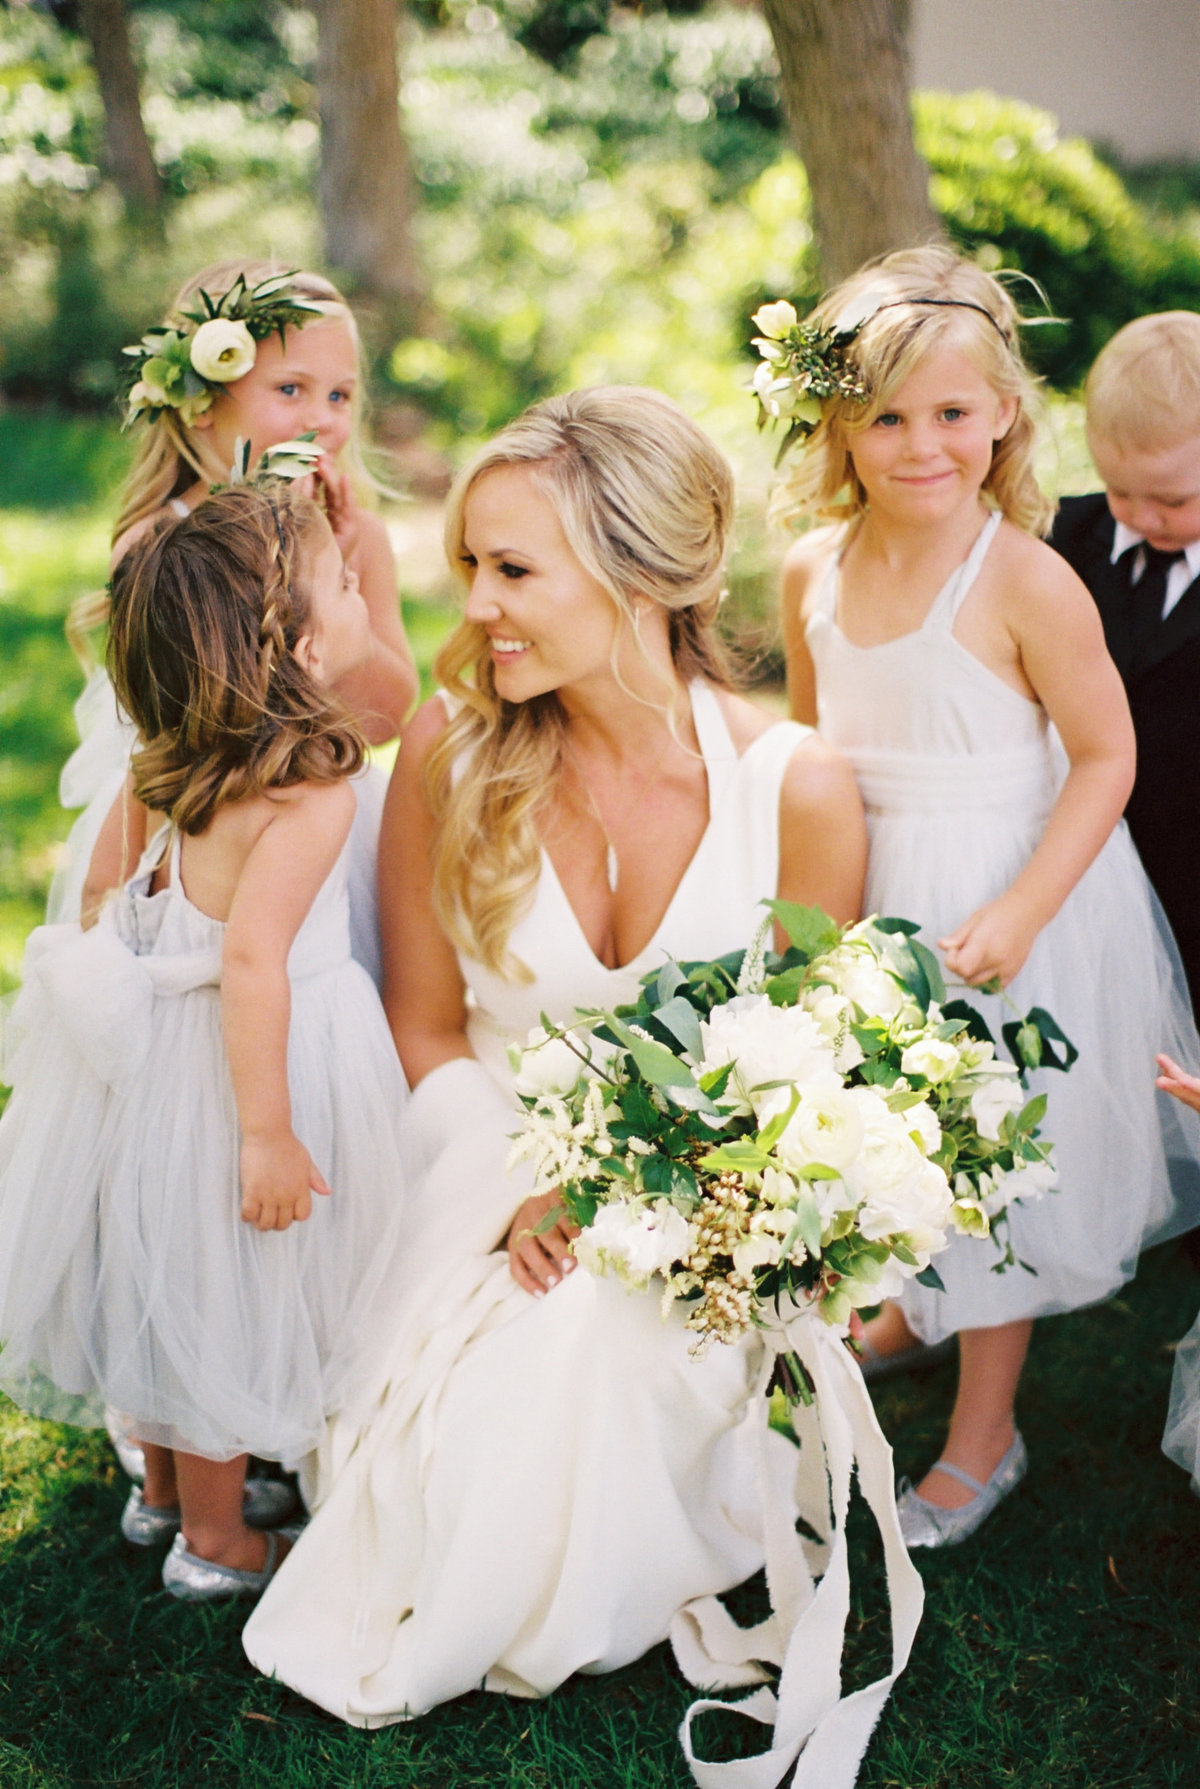 christianne_taylor_marika_fedalen_brian_olsen_bacara_weddings_wedding_christianne_taylor-10